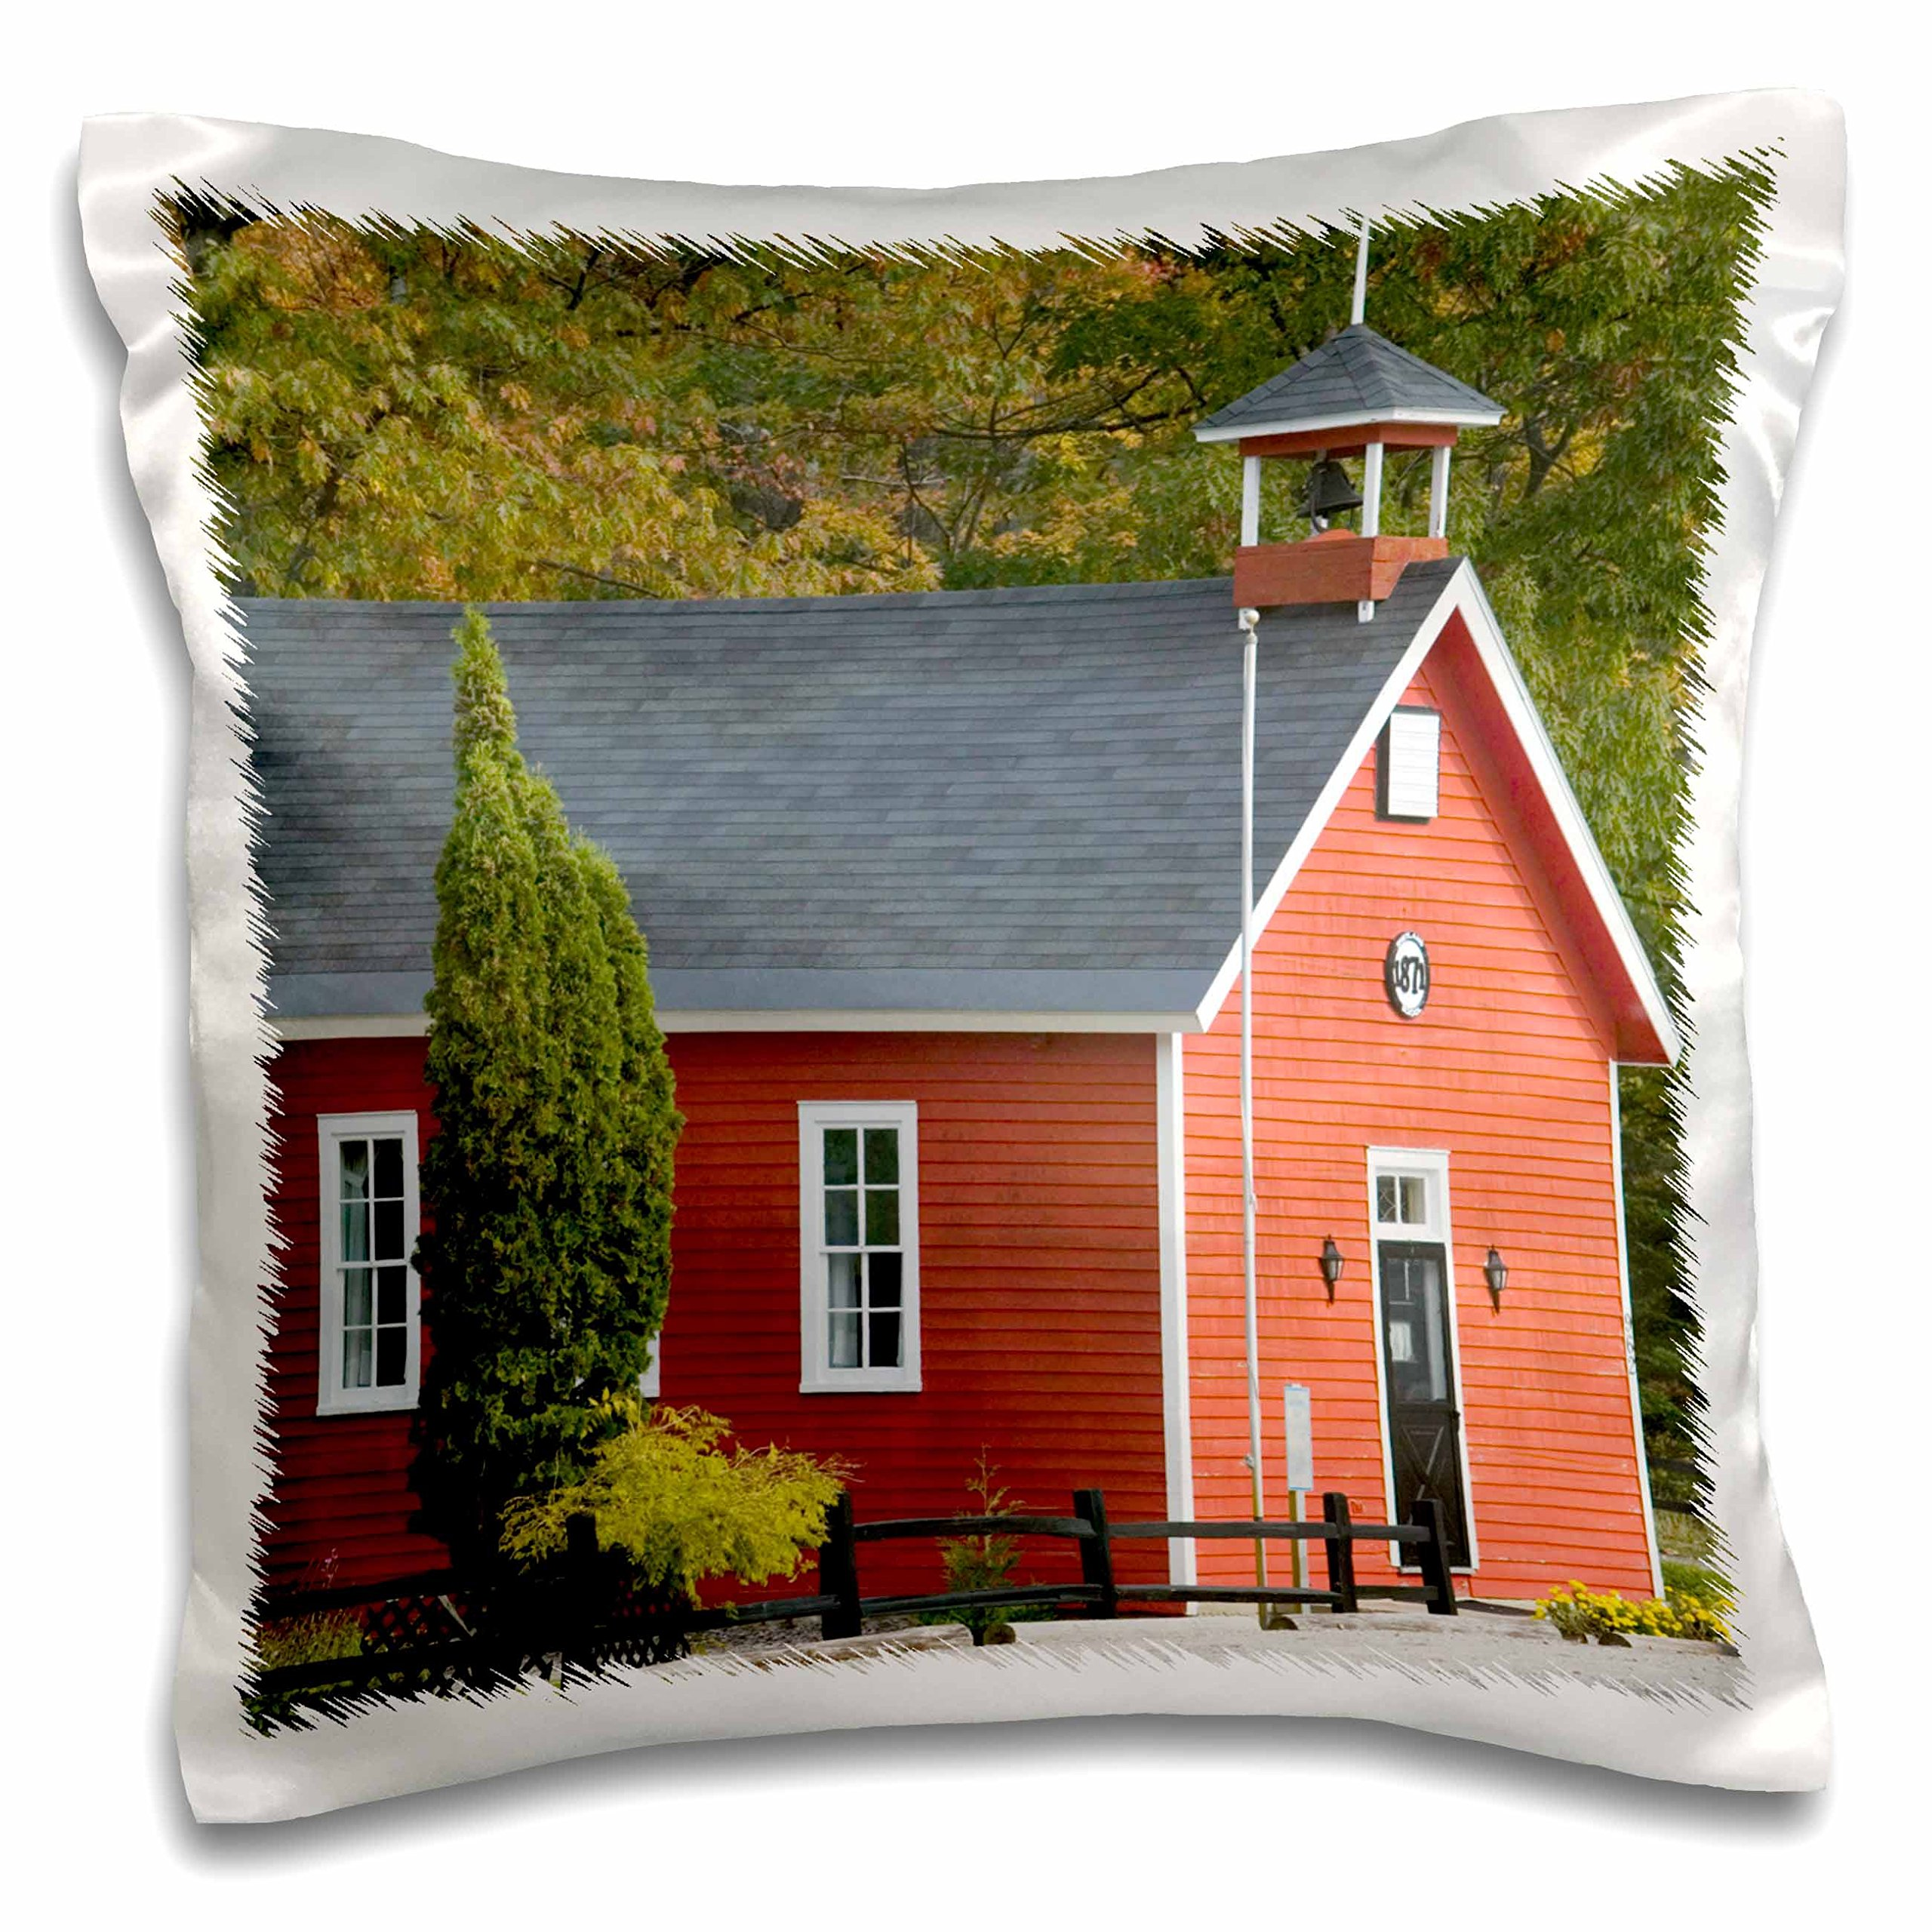 3dRose Michigan, Lake Michigan, Shetland Schoolhouse - US23 WBI0354 - Walter Bibikow - Pillow Case, 16 by 16-inch (pc_91265_1)